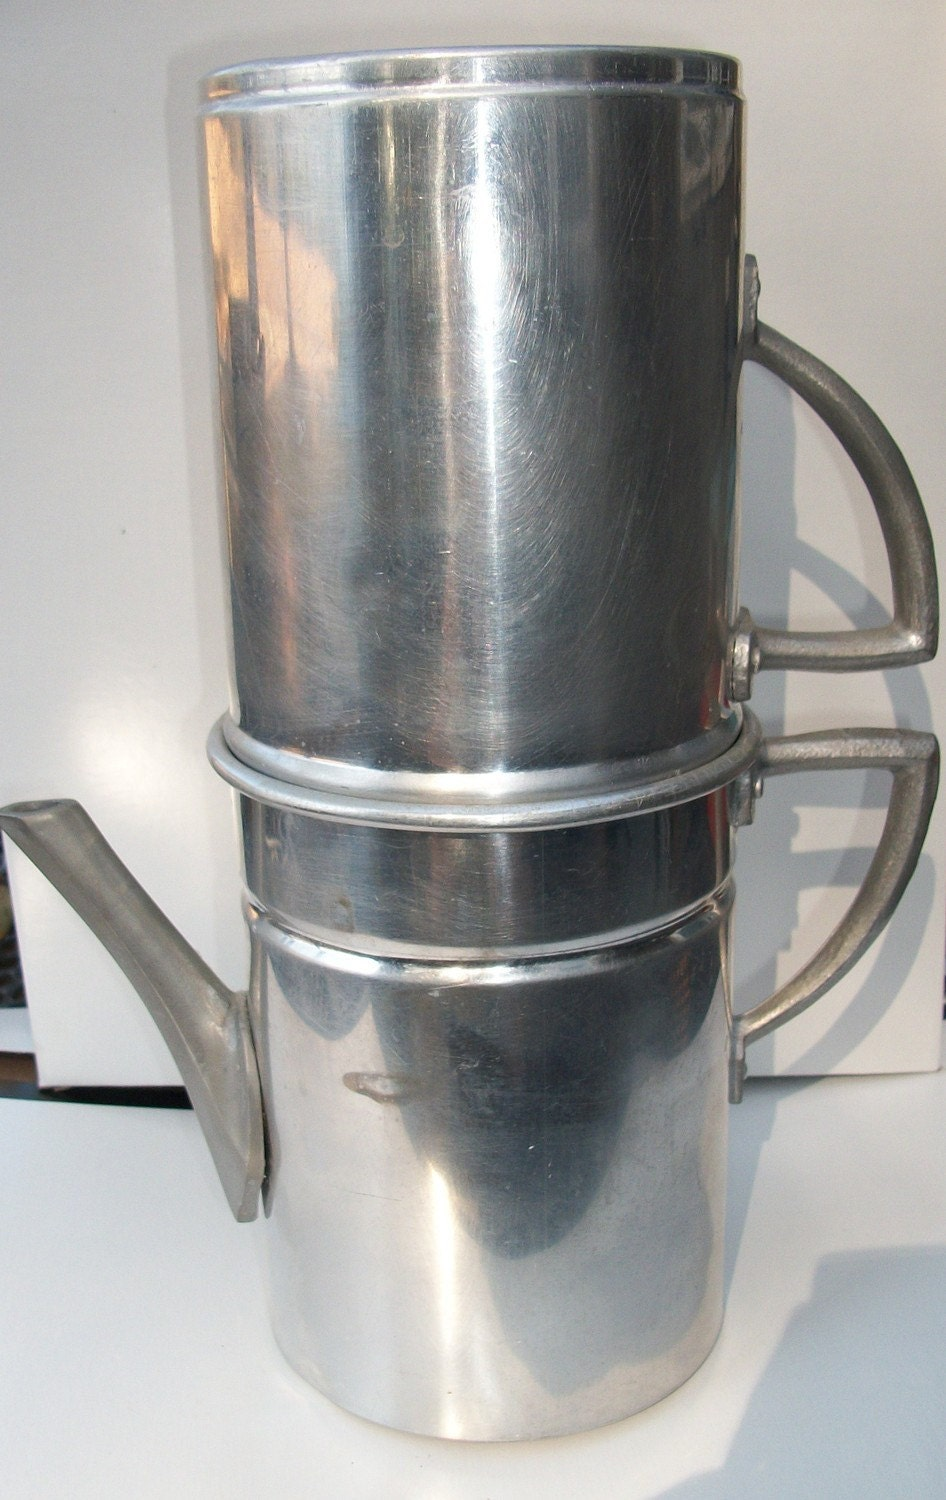 Italian Coffee Maker Filter : Vintage Camping Coffee Maker made in Italy by VintageHomeShop